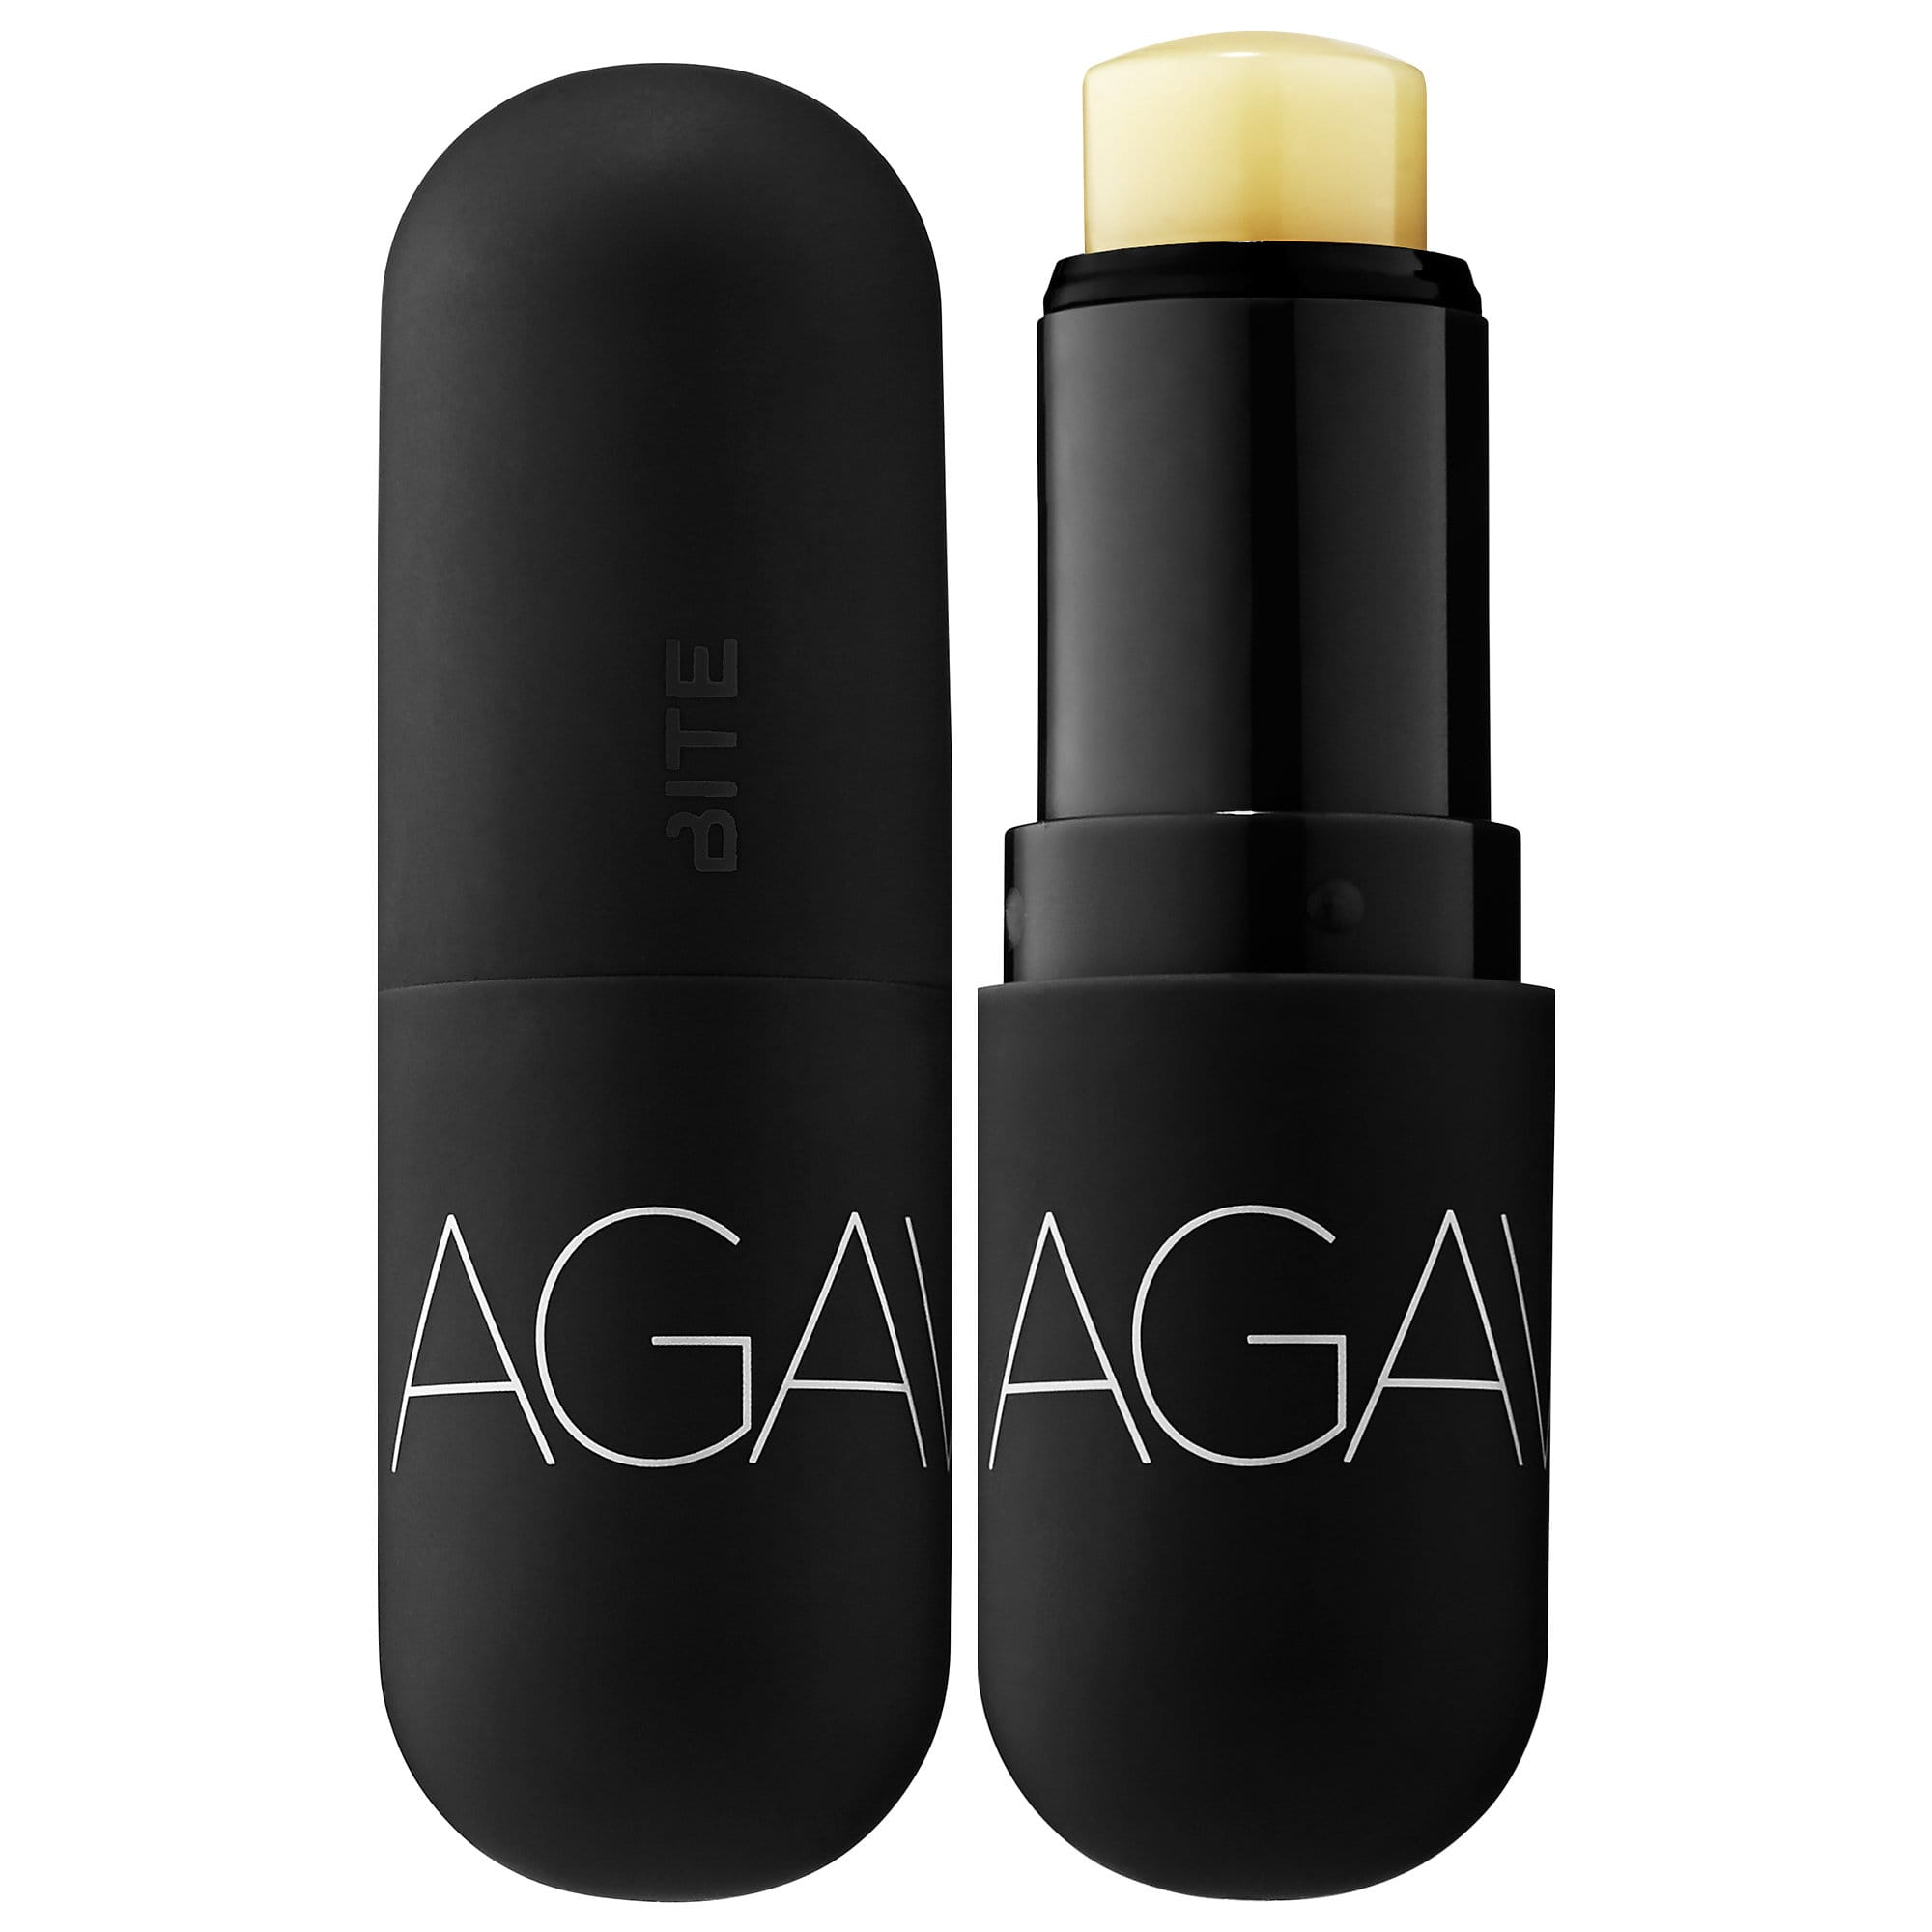 BITE BEAUTY Agave Lip Balm - Top 15 products from Sephora India for Dry Chapped Lips- Reviews & Price